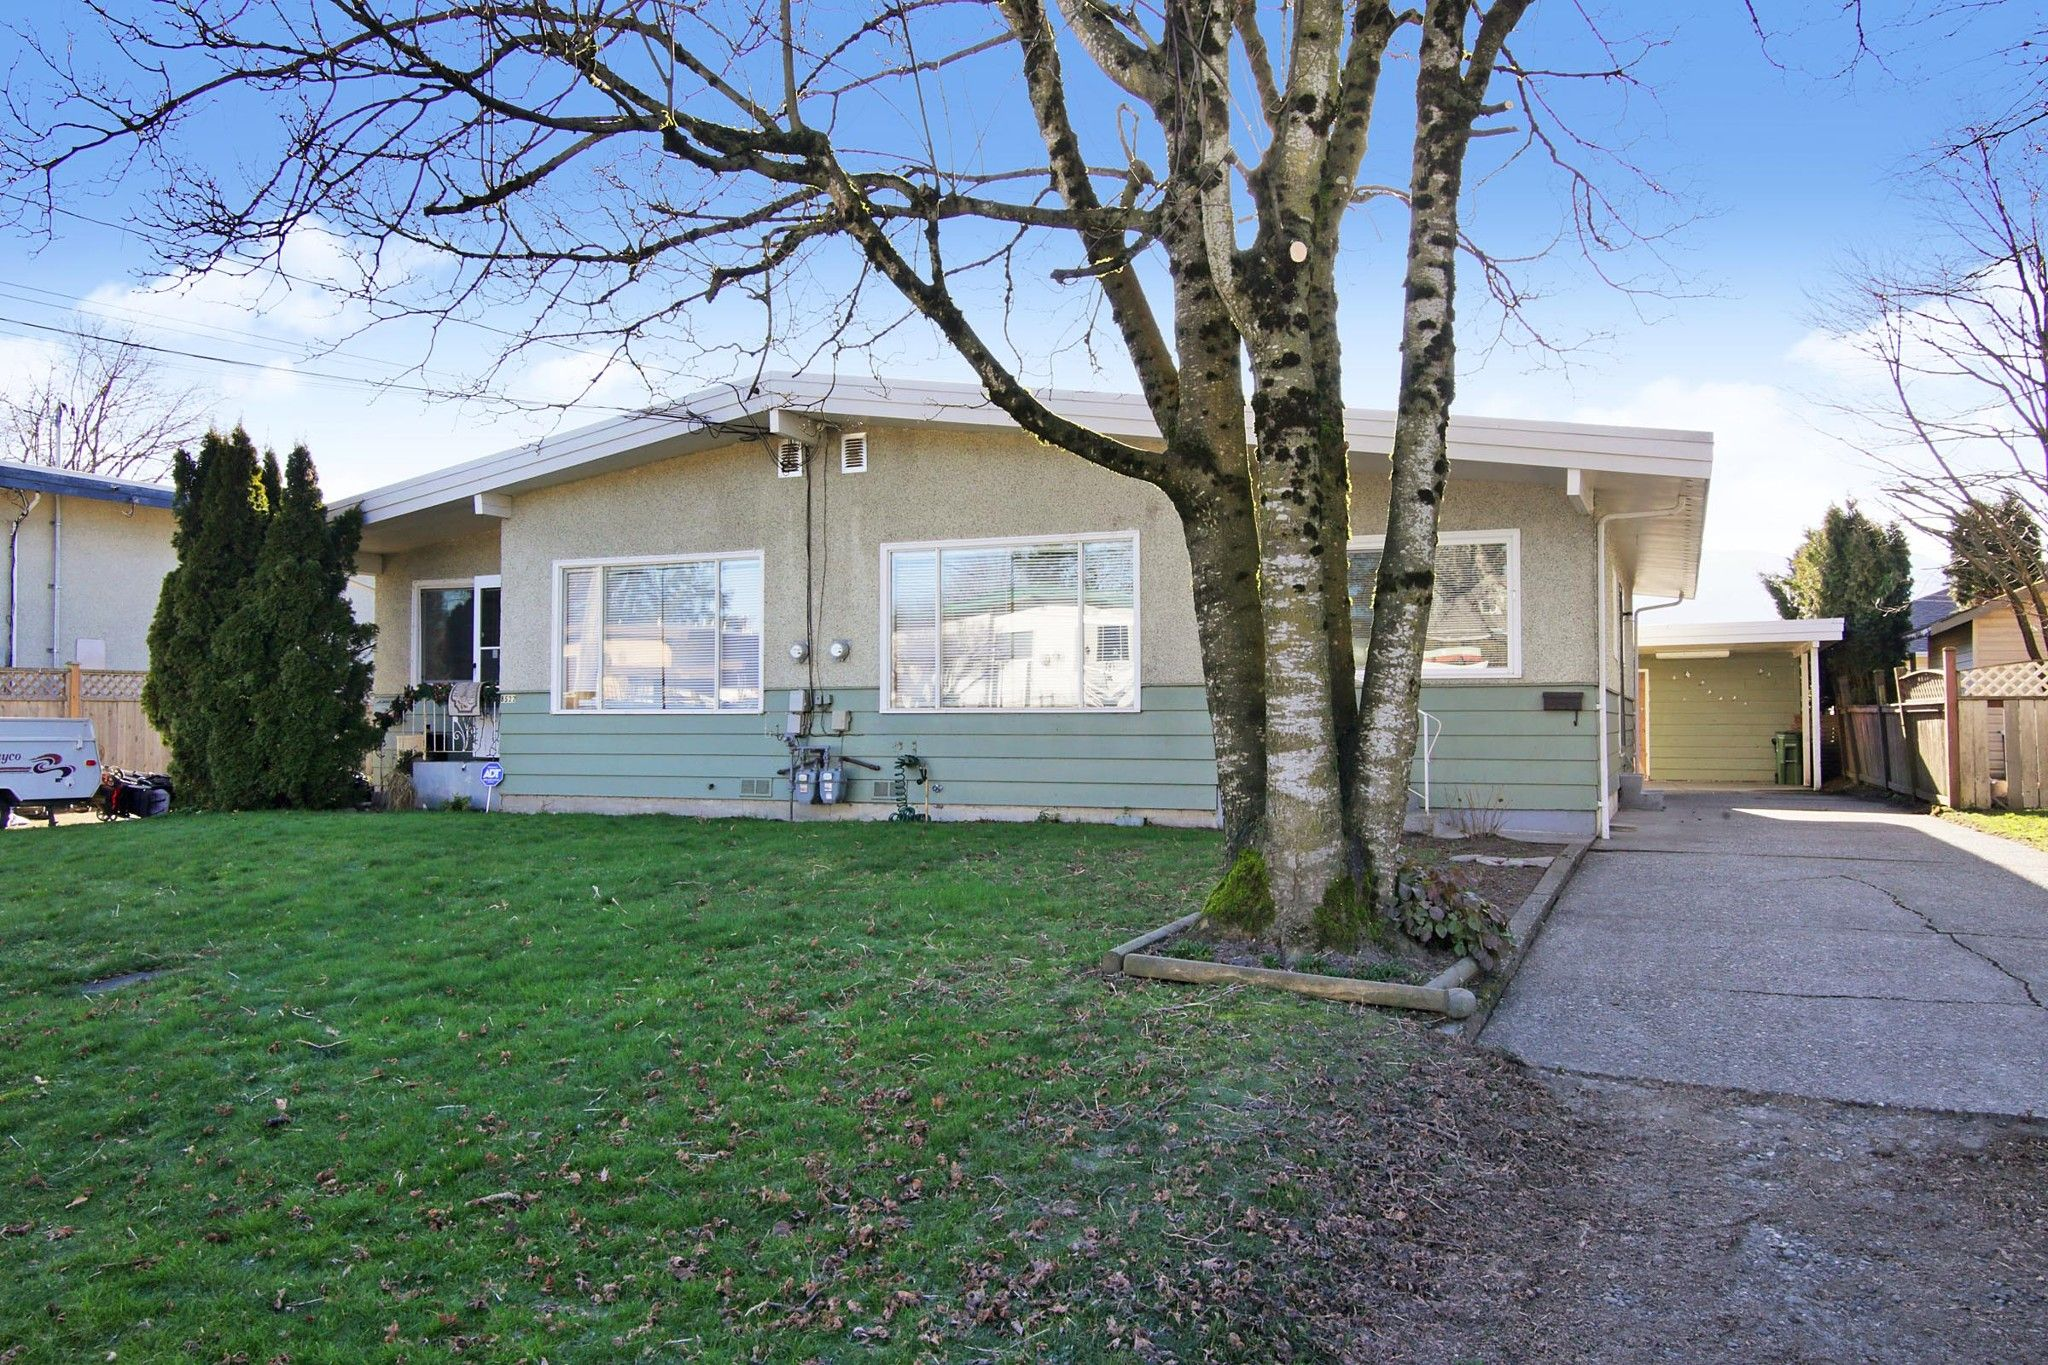 Main Photo: 8520 HOWARD Crescent in Chilliwack: Chilliwack E Young-Yale Duplex for sale : MLS®# R2532277